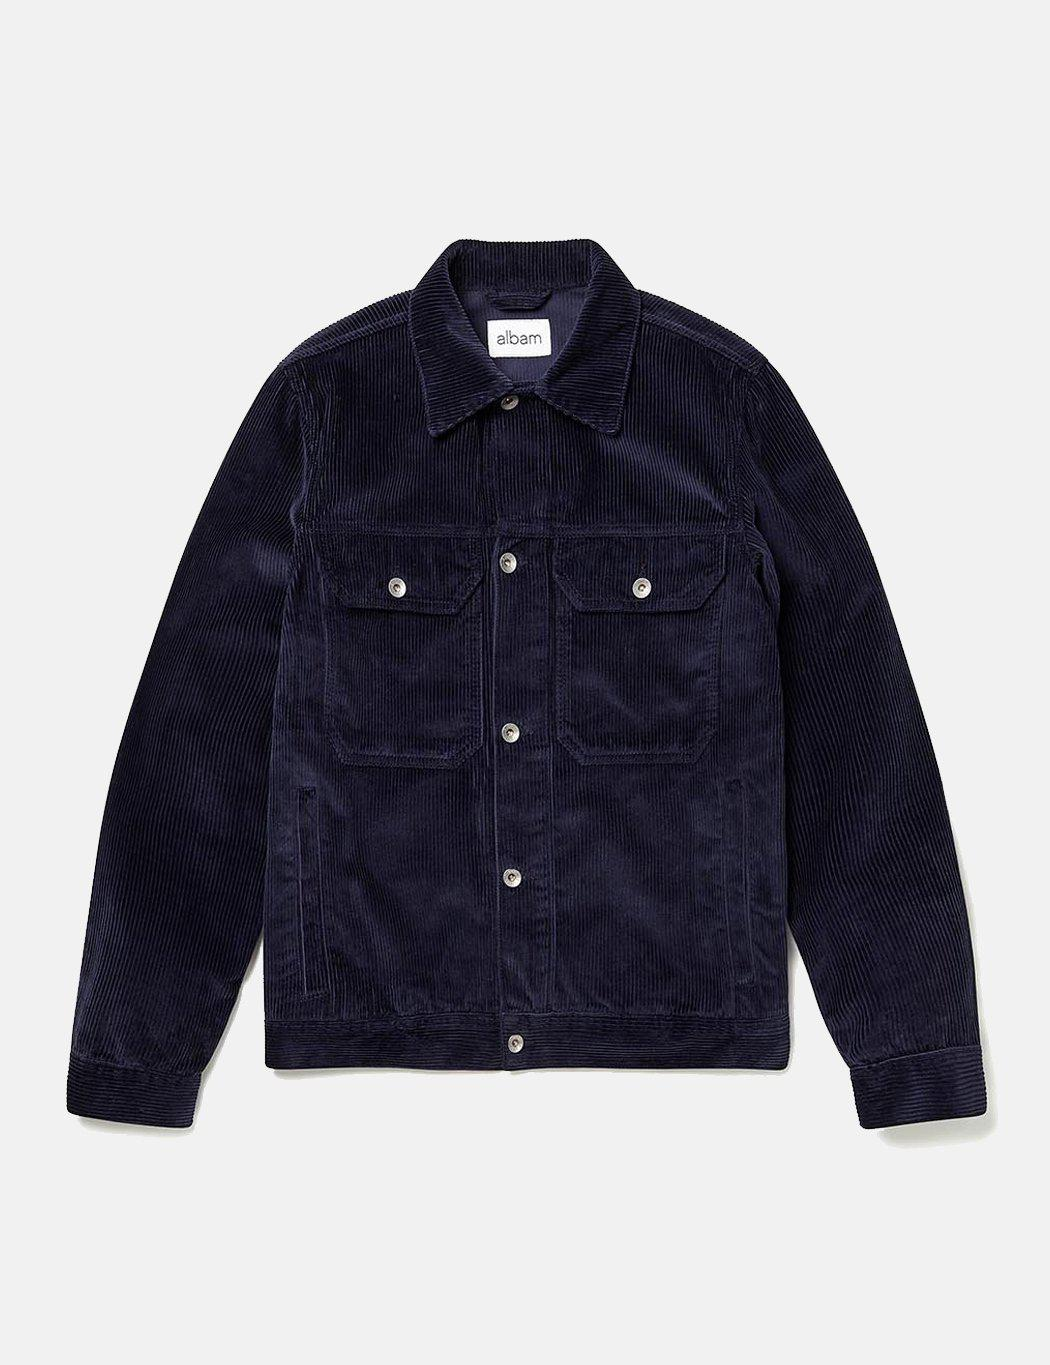 Albam Cord Utility Jacket In Blue For Men Lyst